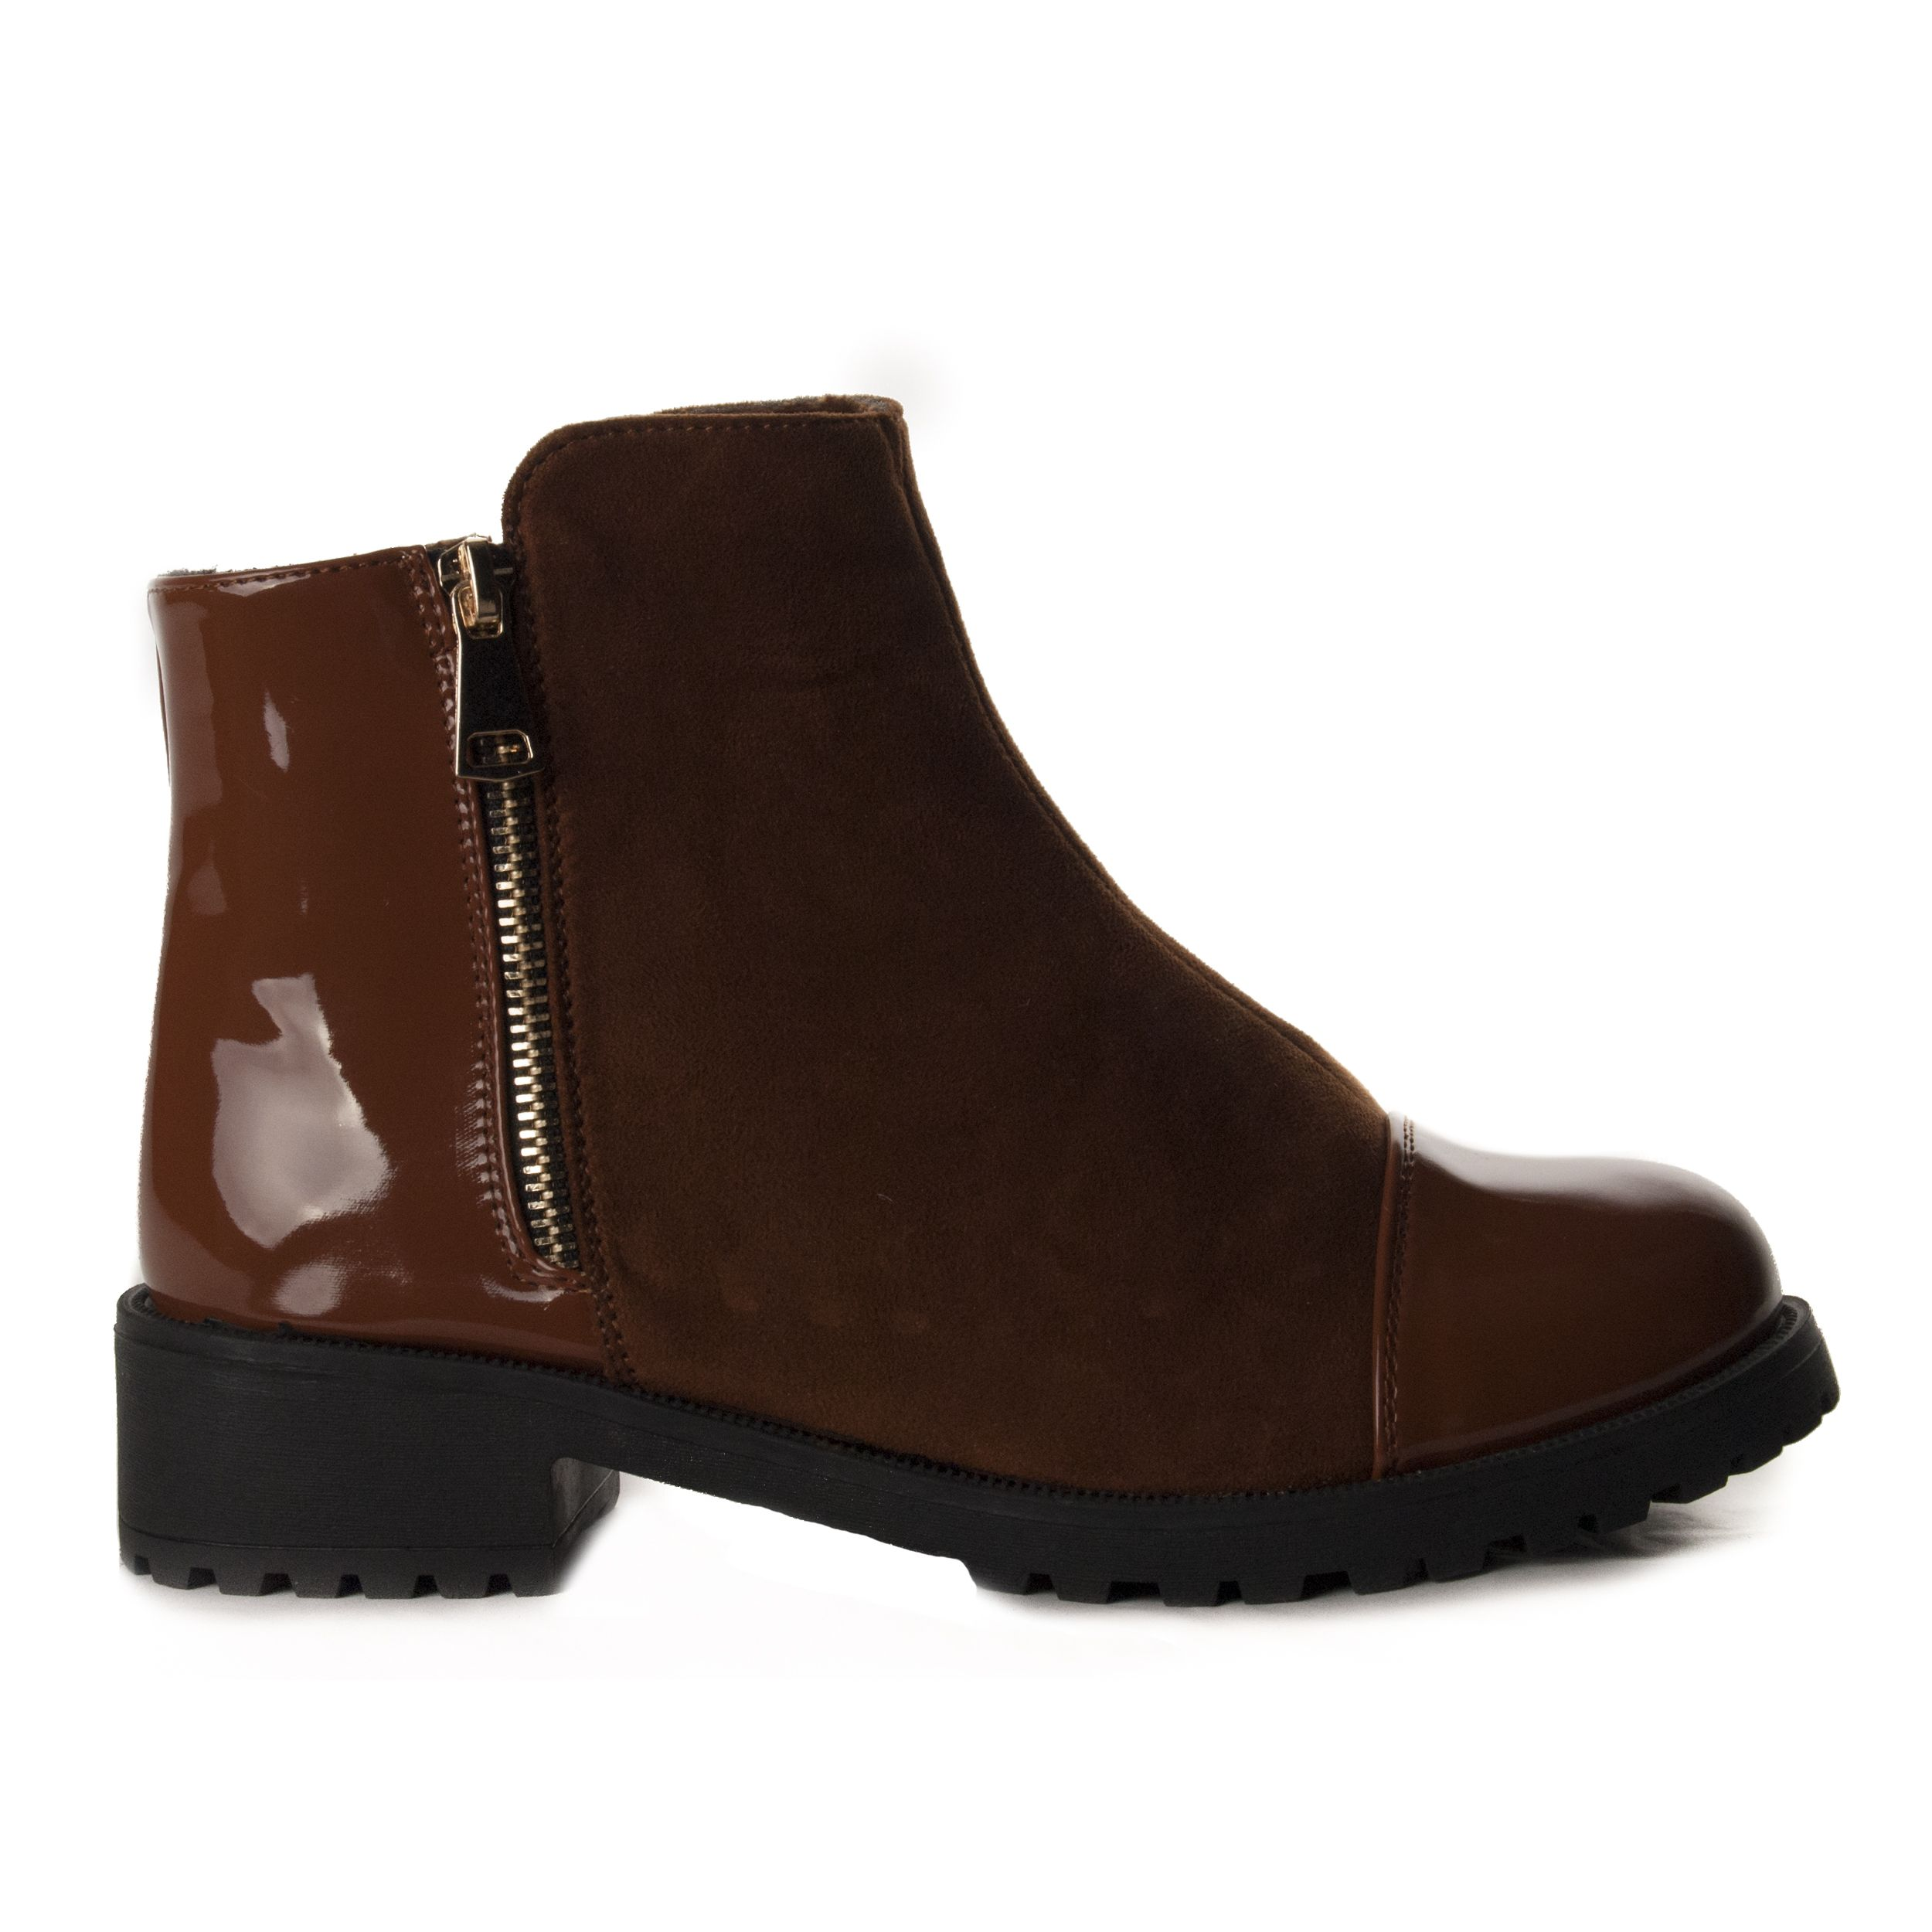 Montevita Patent Ankle Boot in Camel